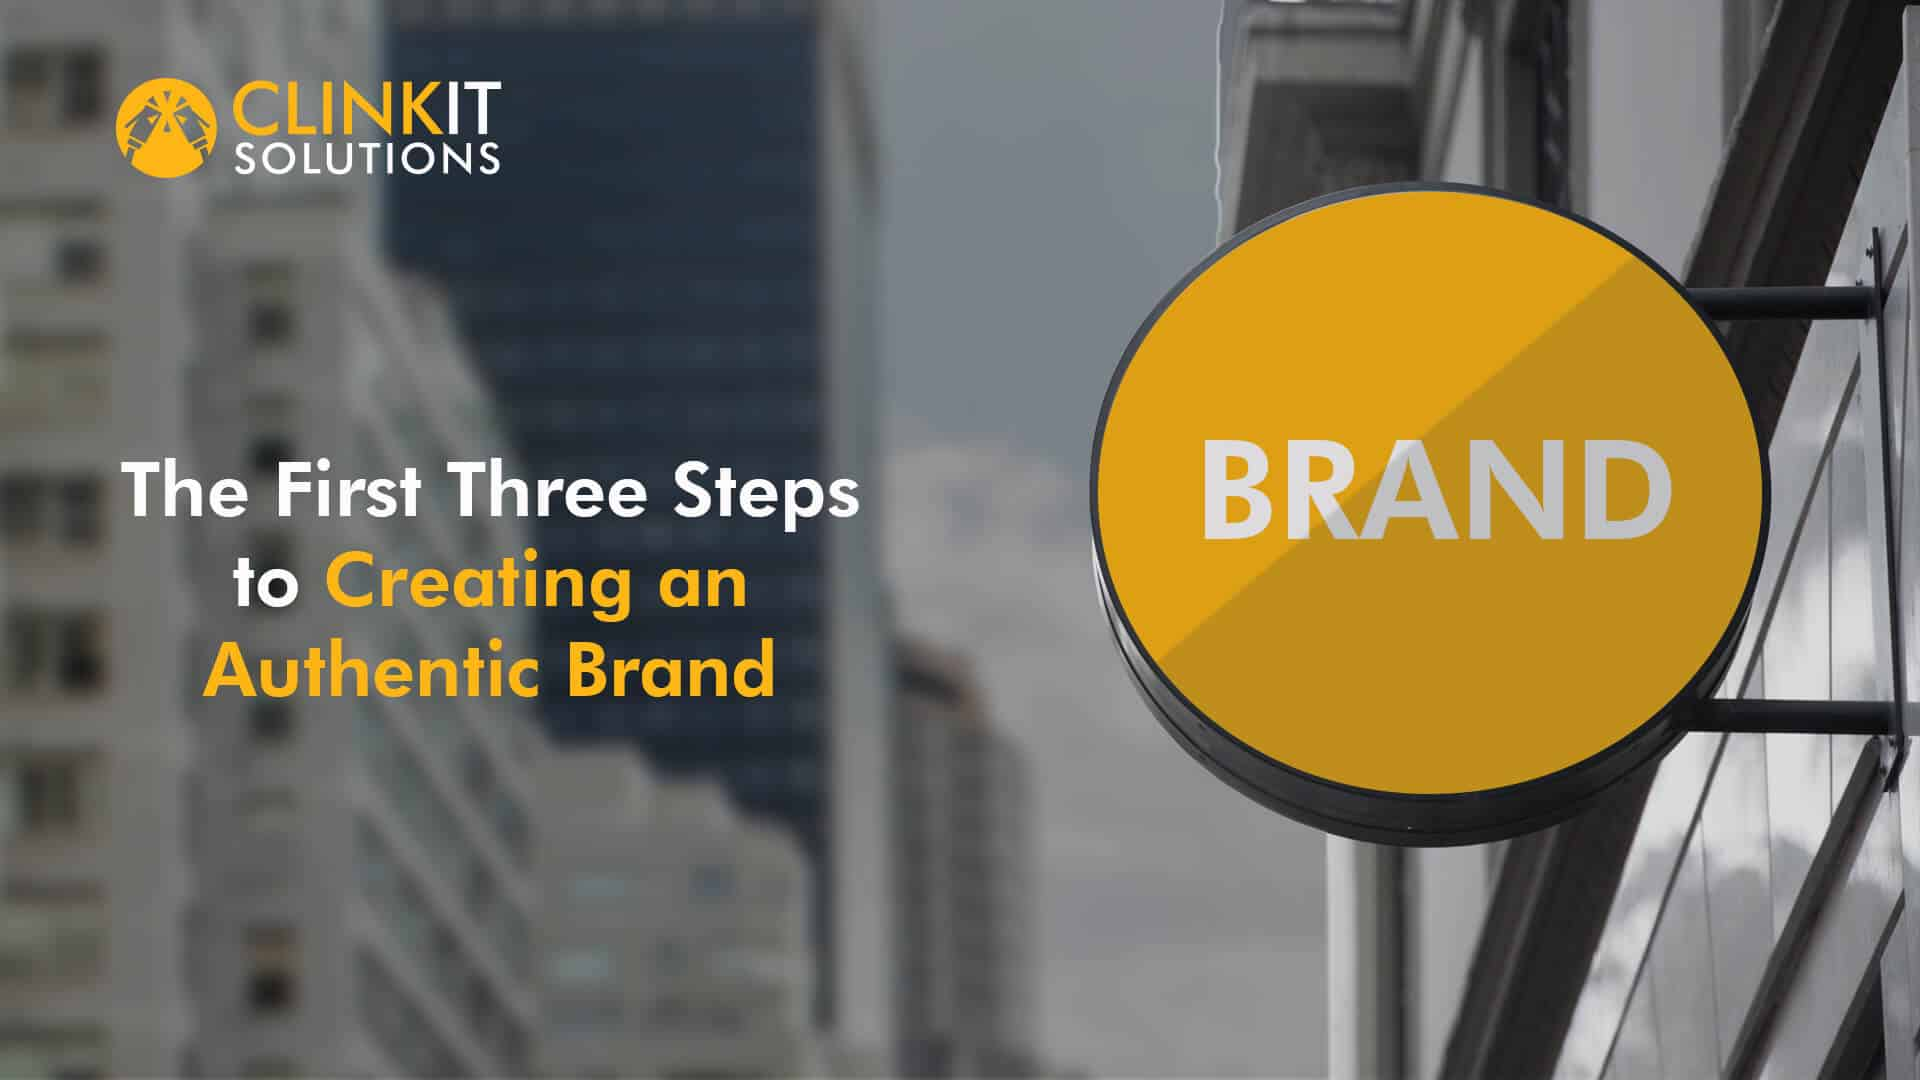 First Three Steps to Creating an Authentic Brand